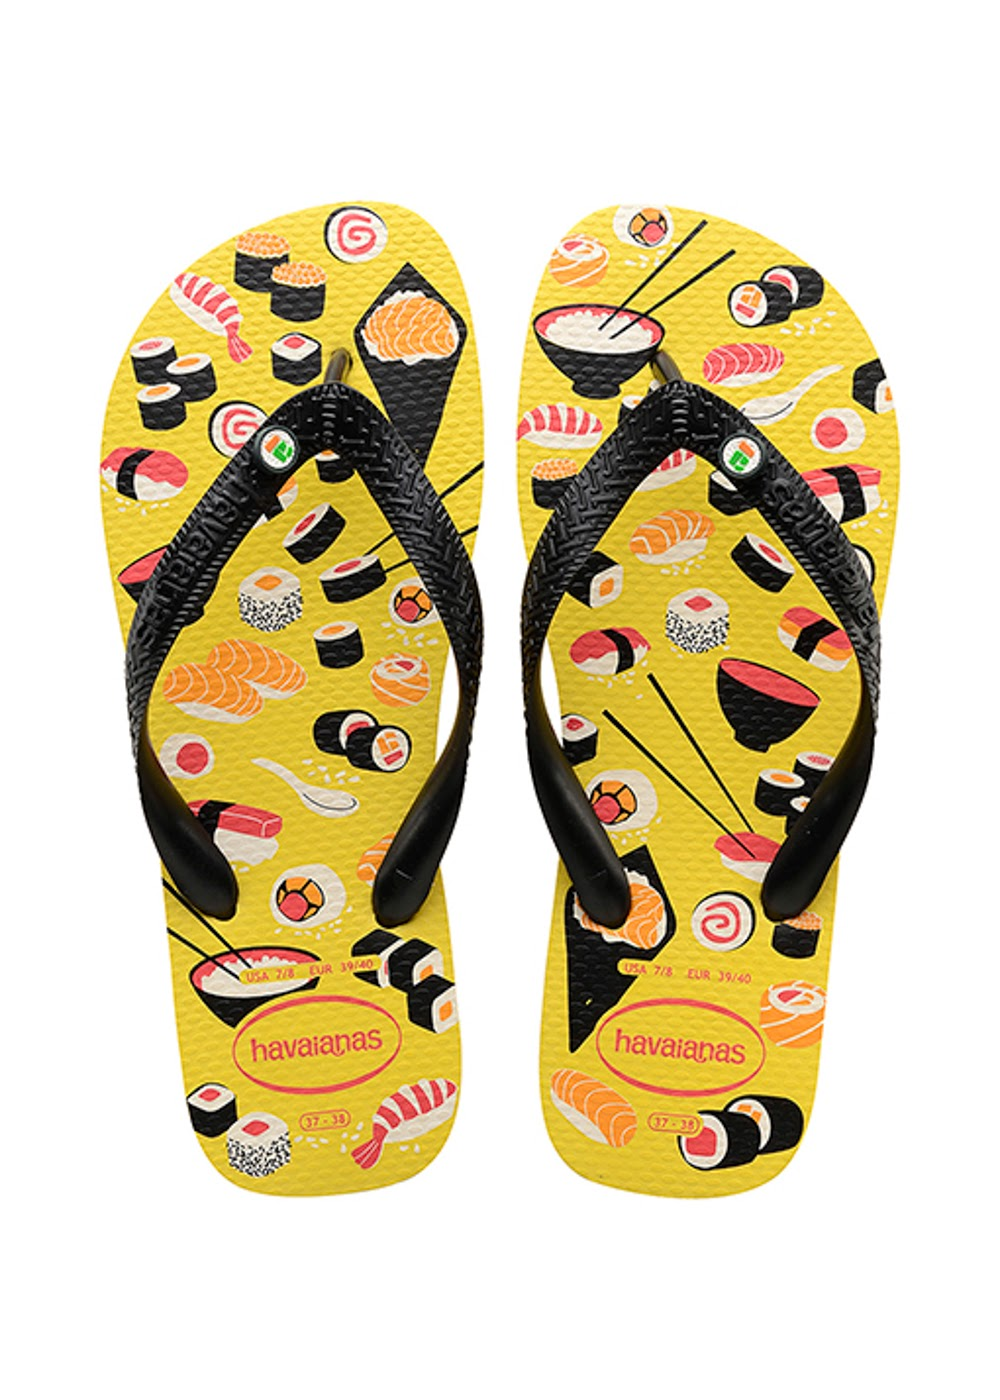 c7fa5823ffe5 Bask in that summer feeling with the new Havaianas Flip-flops ...